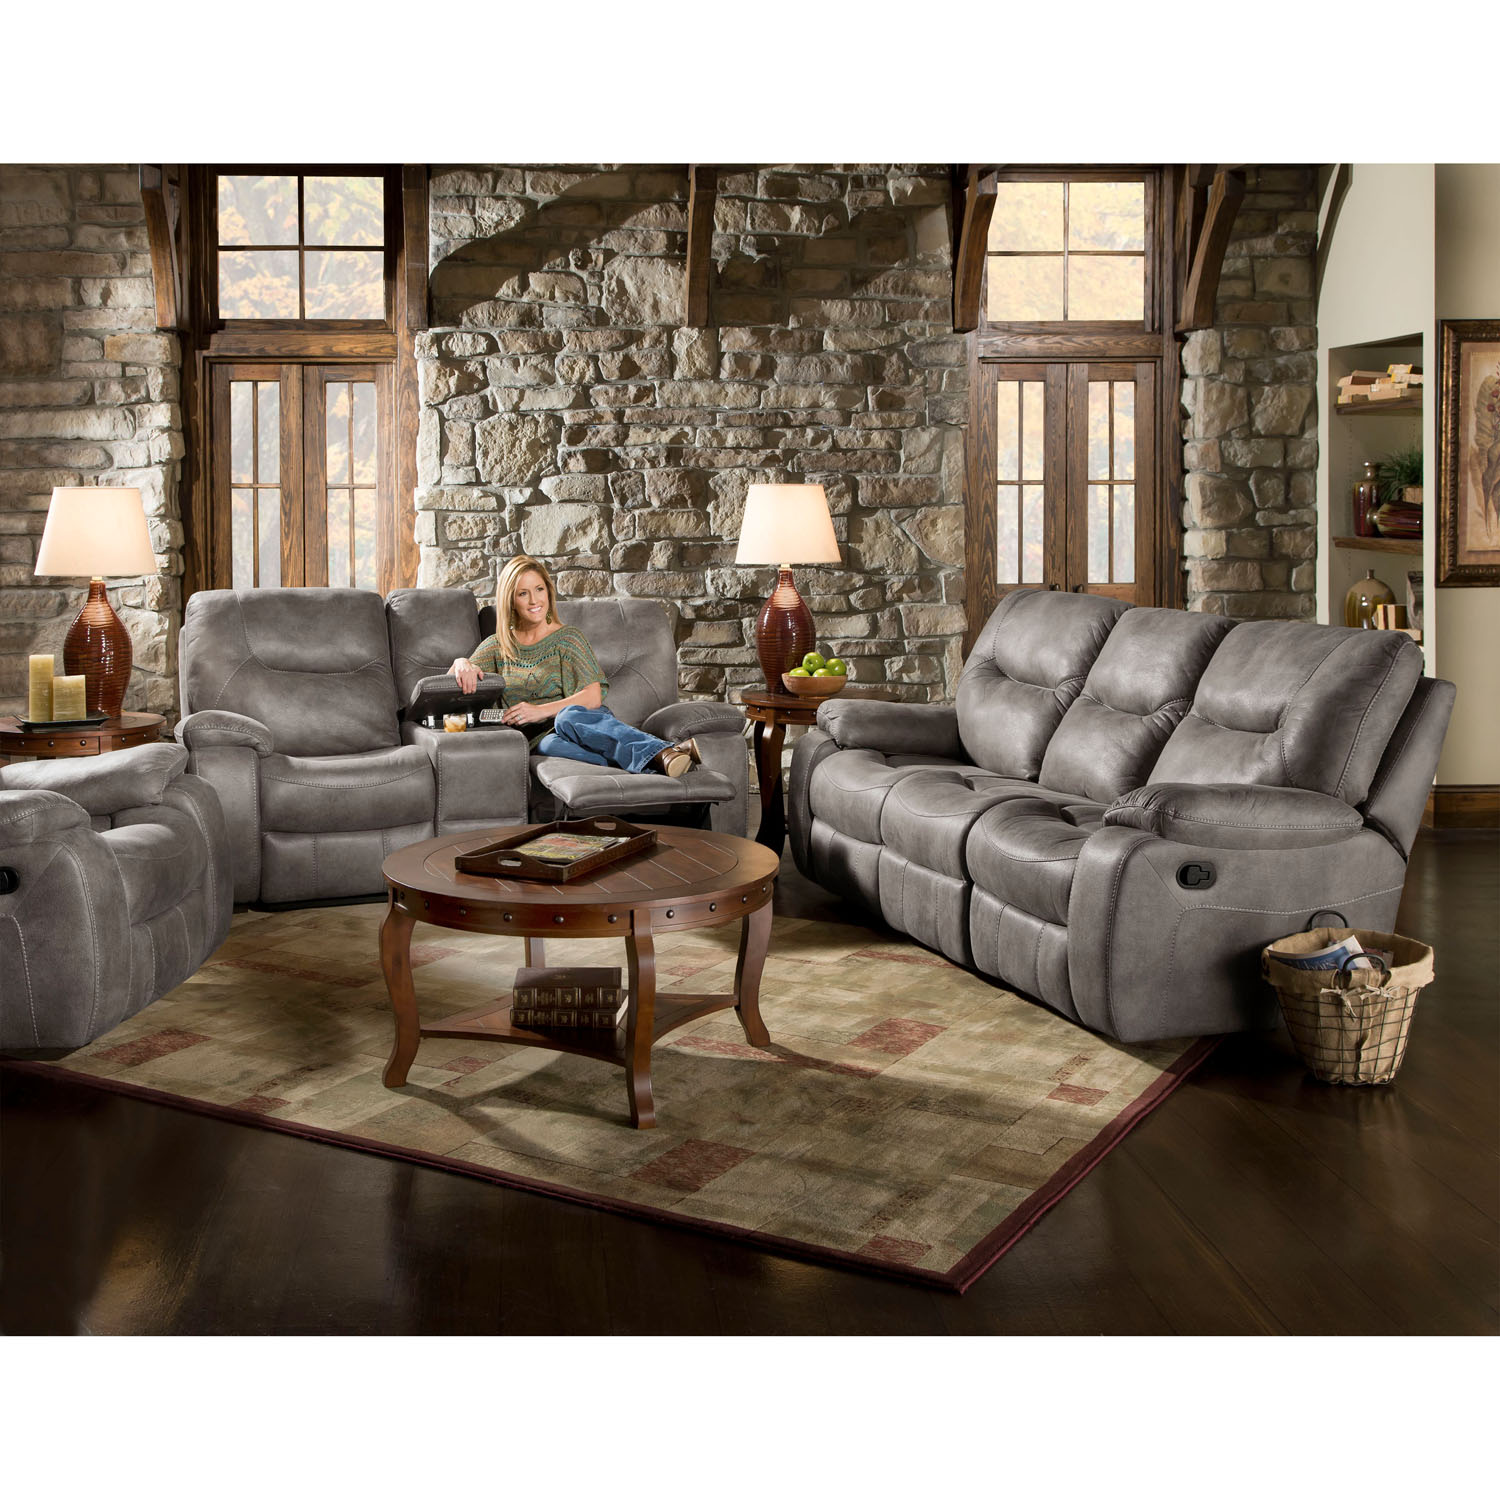 Forte 2pc living room sofa set in charcoal hup002a2pc sn for Charcoal sofa living room